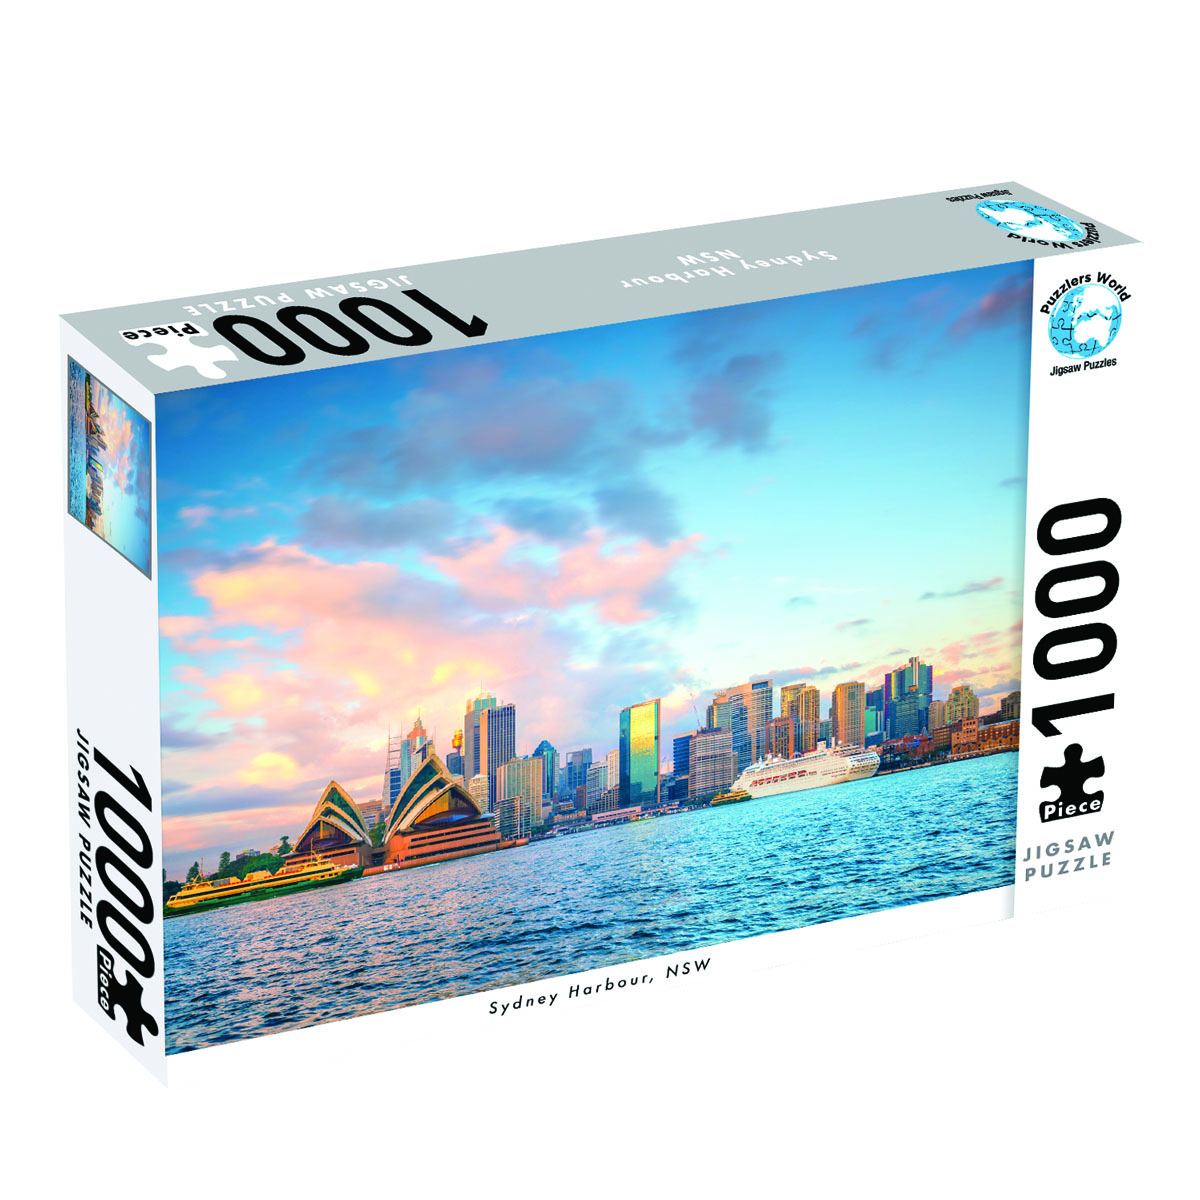 Puzzlers World ~ Artistic Jigsaw 1000pc Puzzles ~ Sydney Harbour